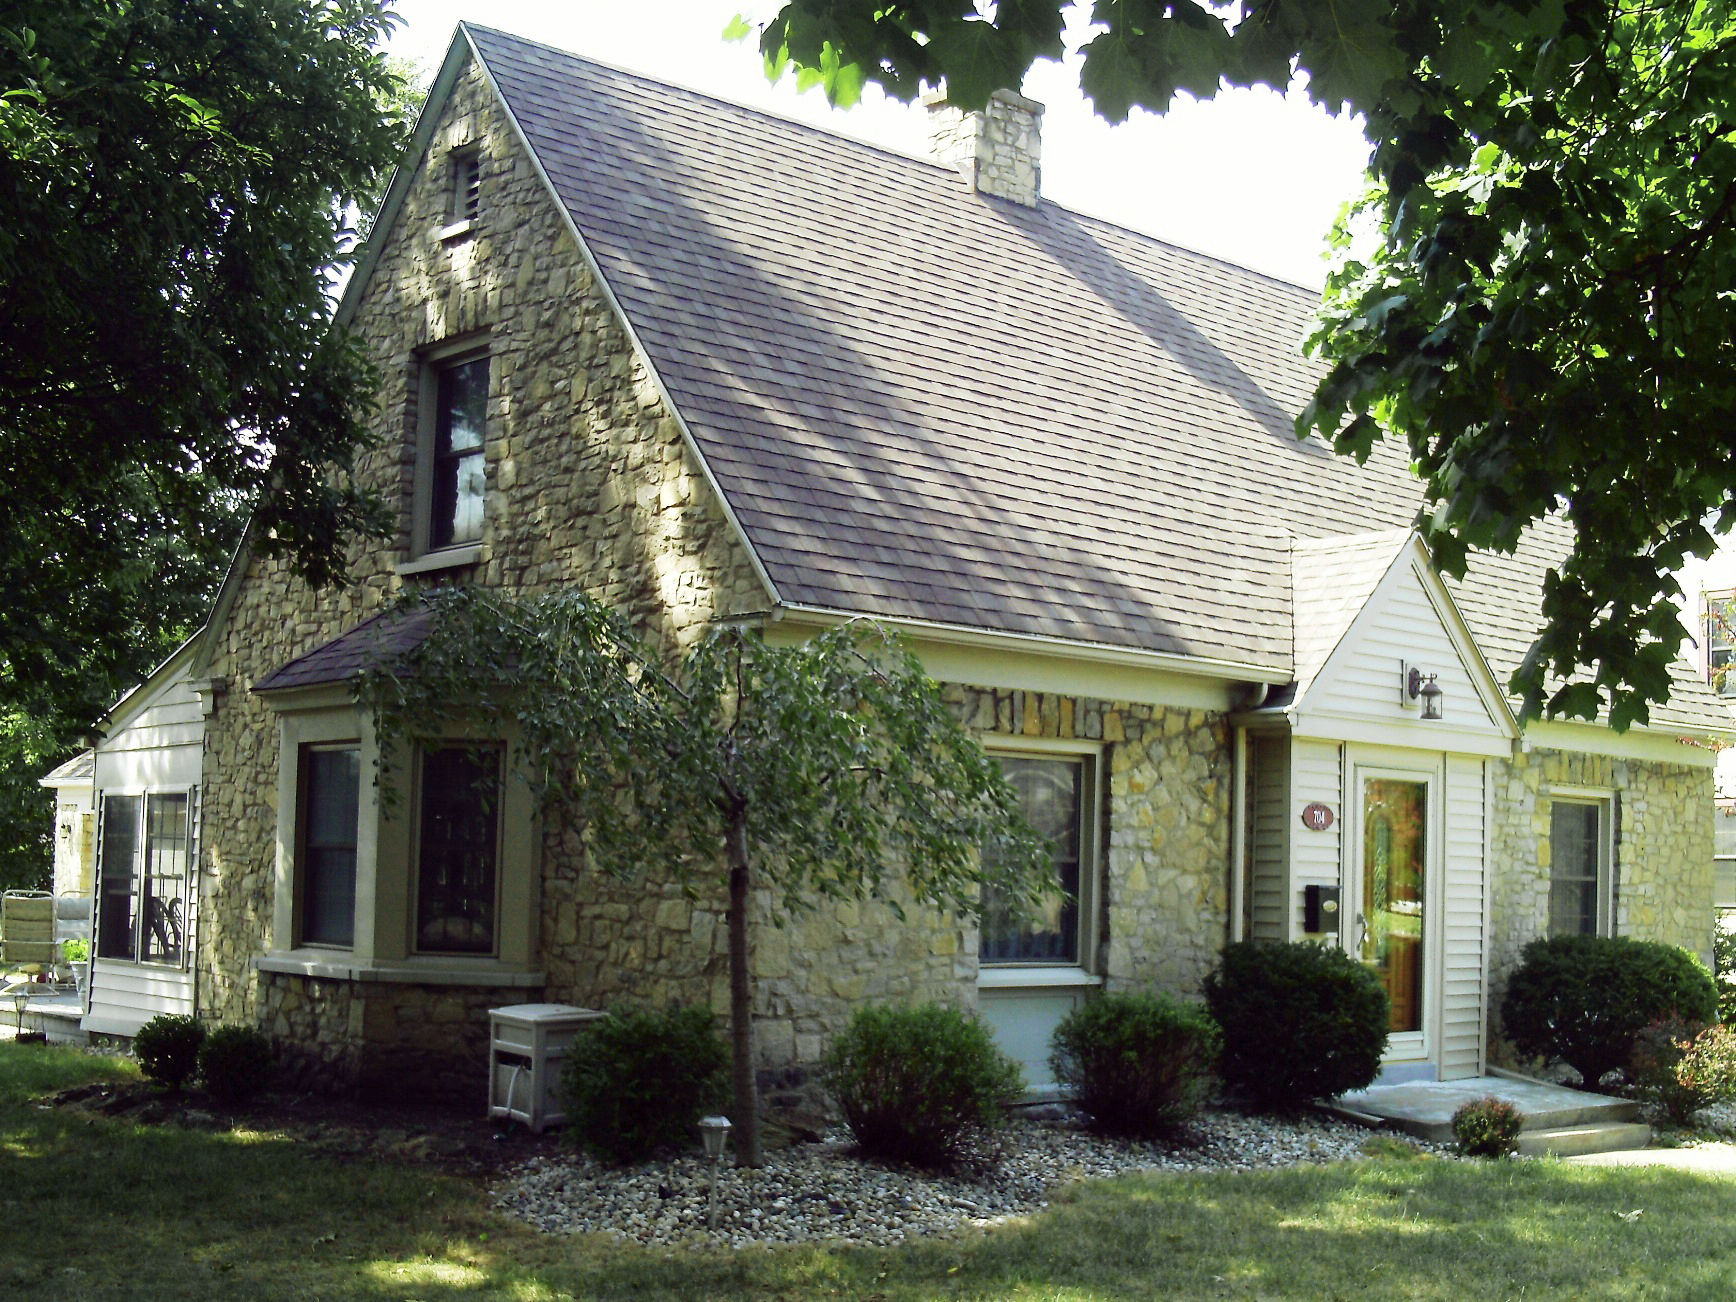 Homes tour to feature old new of neighborhood the blade New homes cape cod